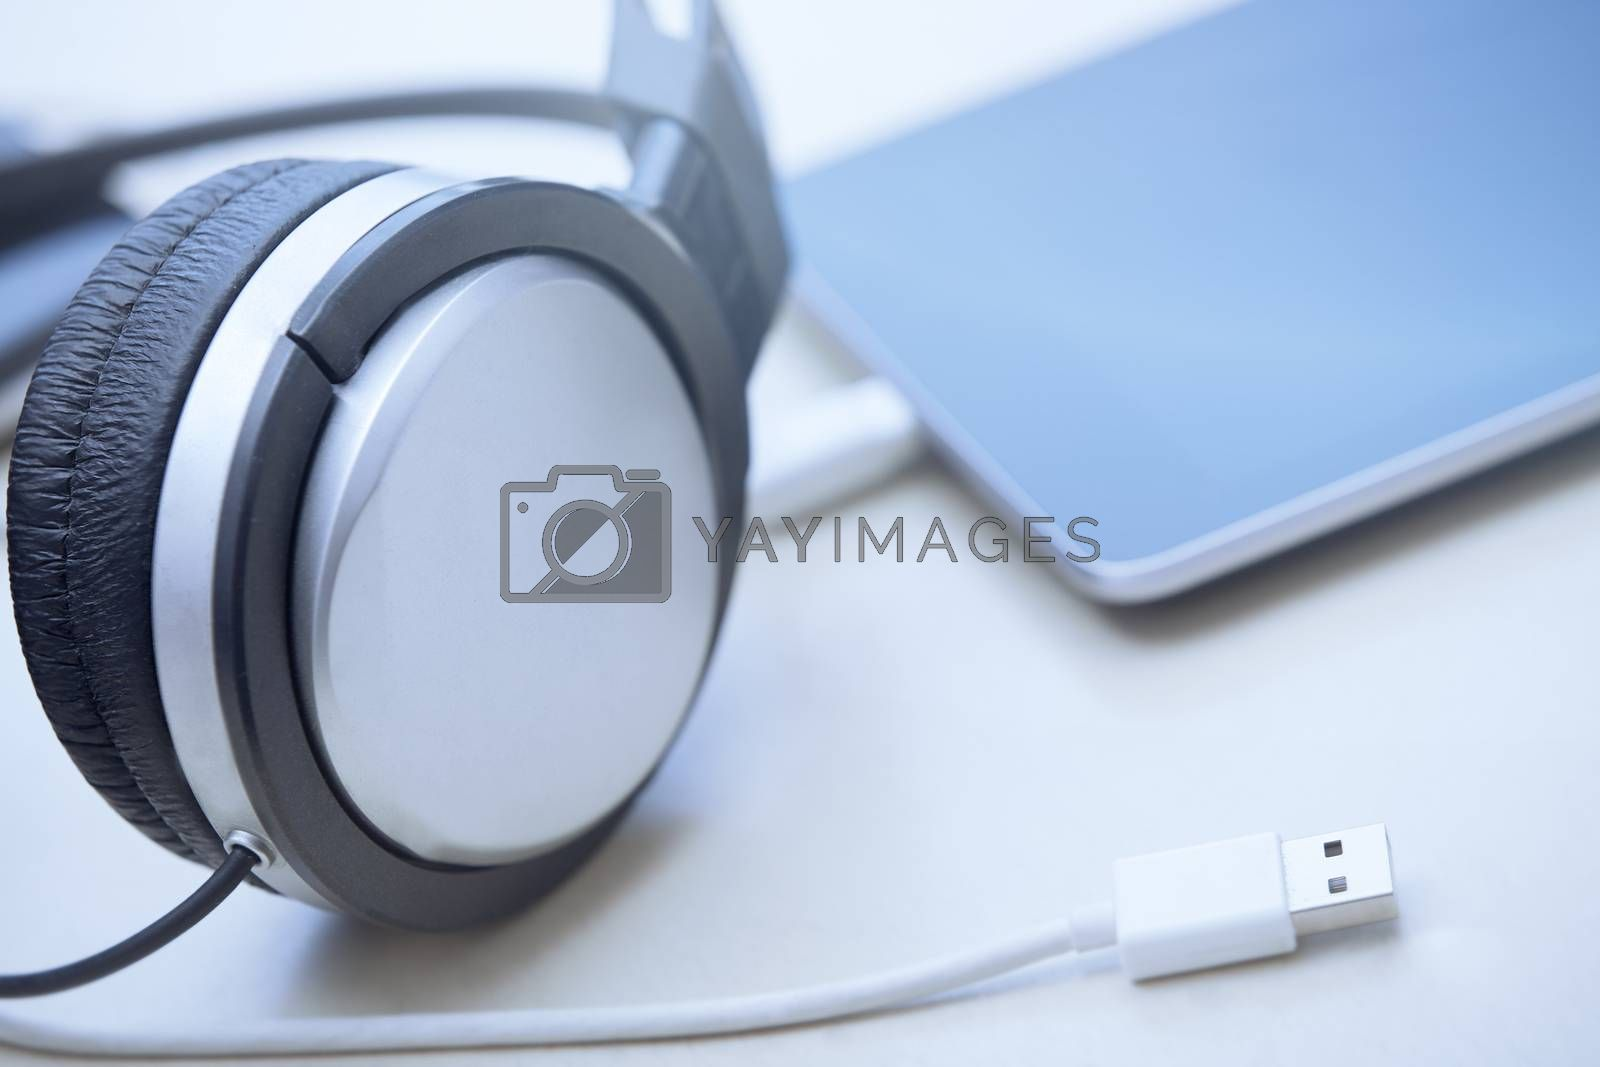 Headphones digital tablet and USB cable laying on a table